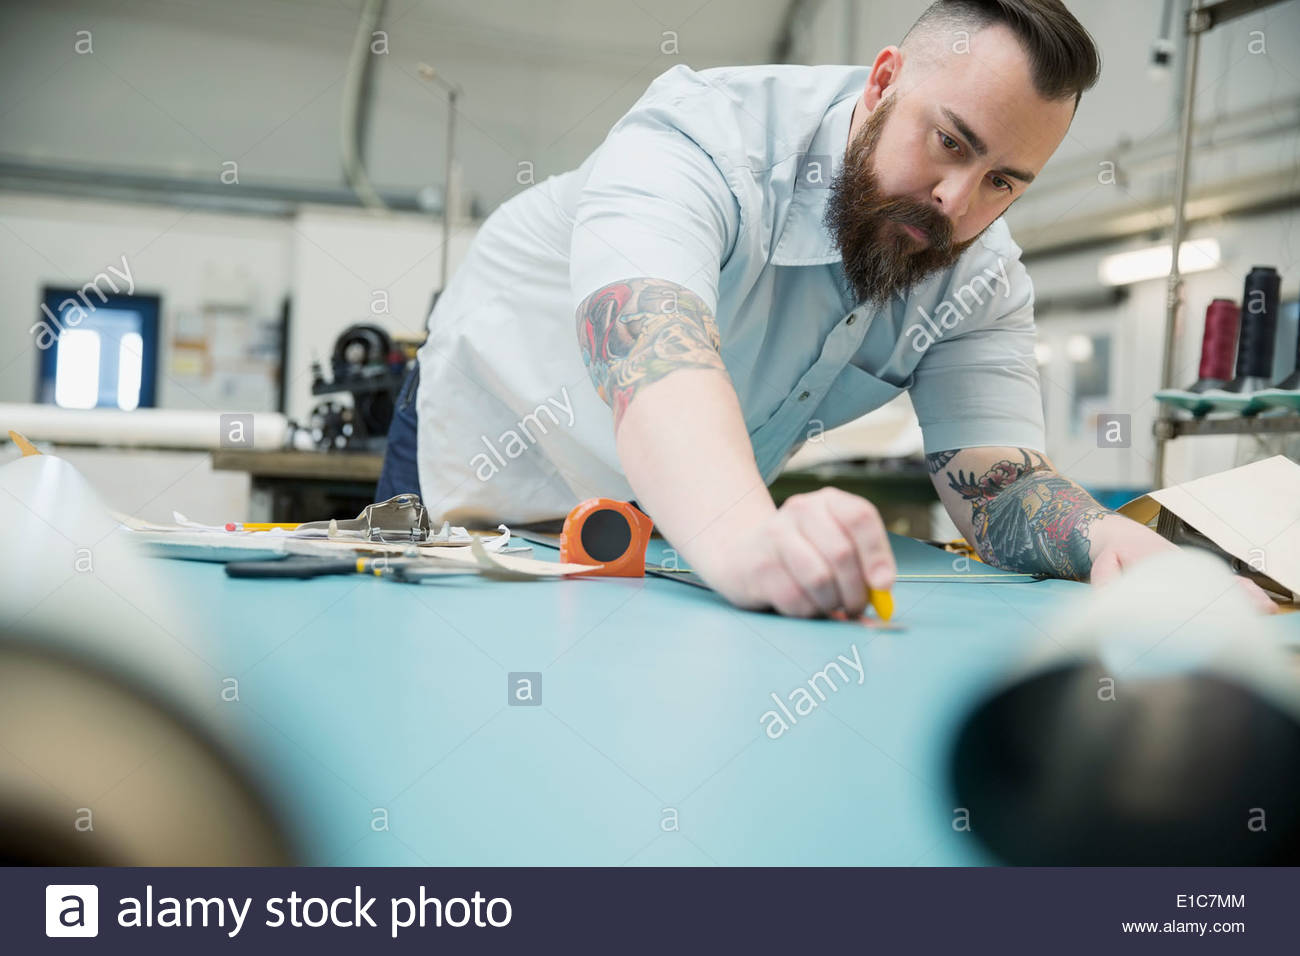 Worker in textile manufacturing plant Stock Photo